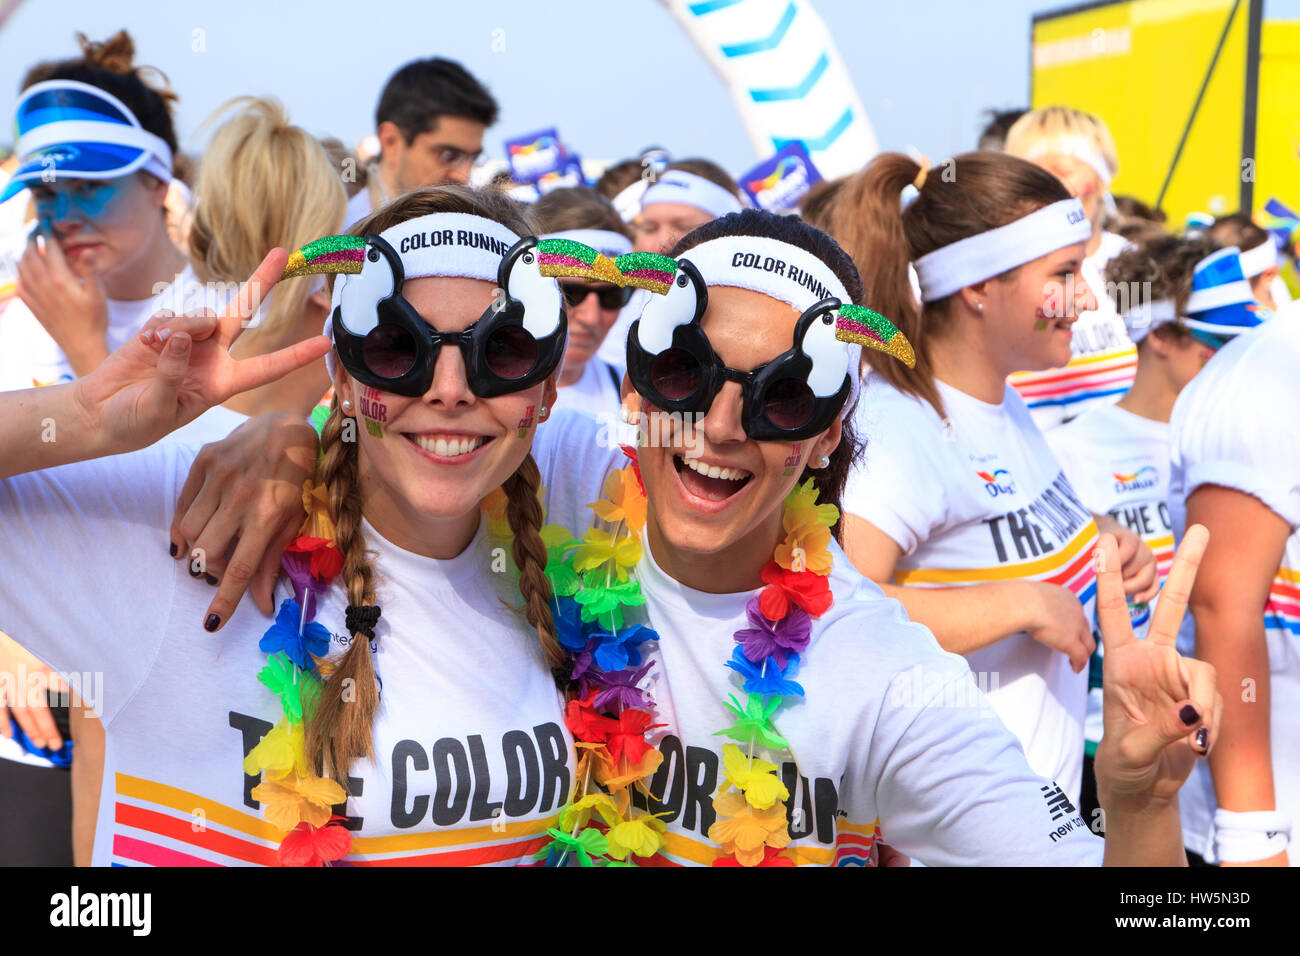 color-run-the-color-run-sponsored-by-dul